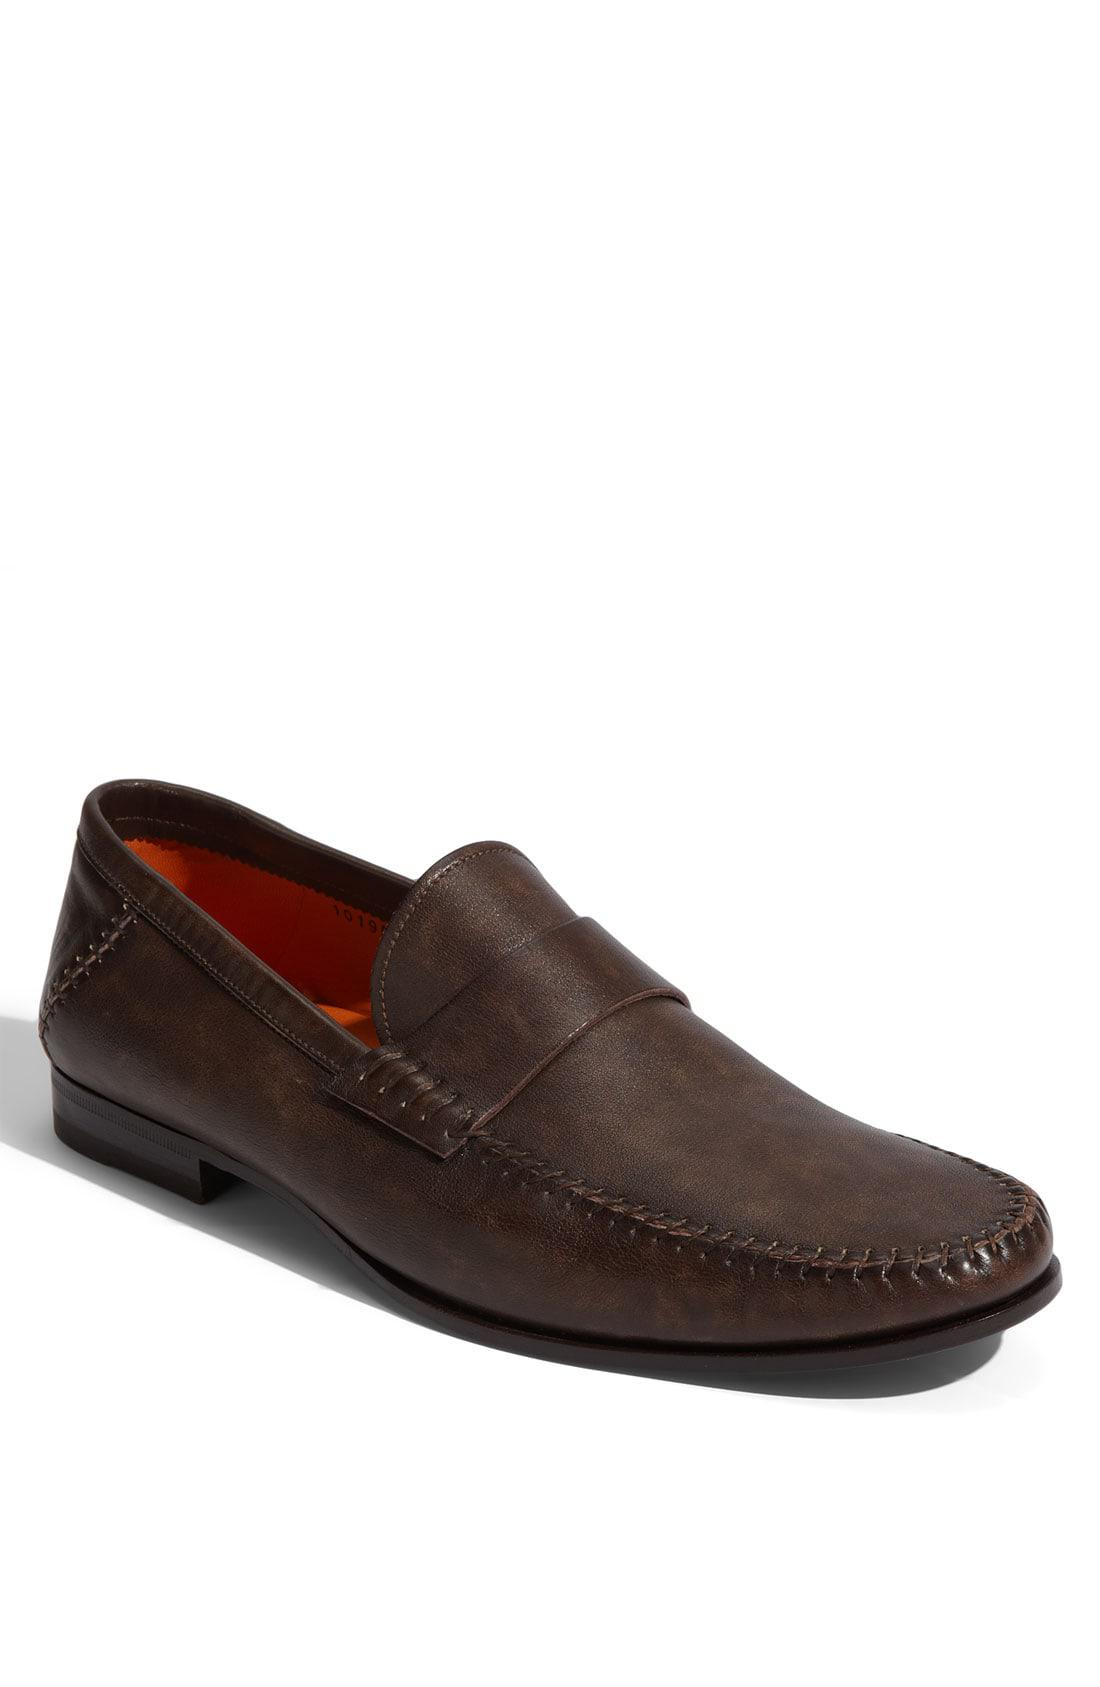 26d0565c340 Lyst - Santoni Paine Loafer in Brown for Men